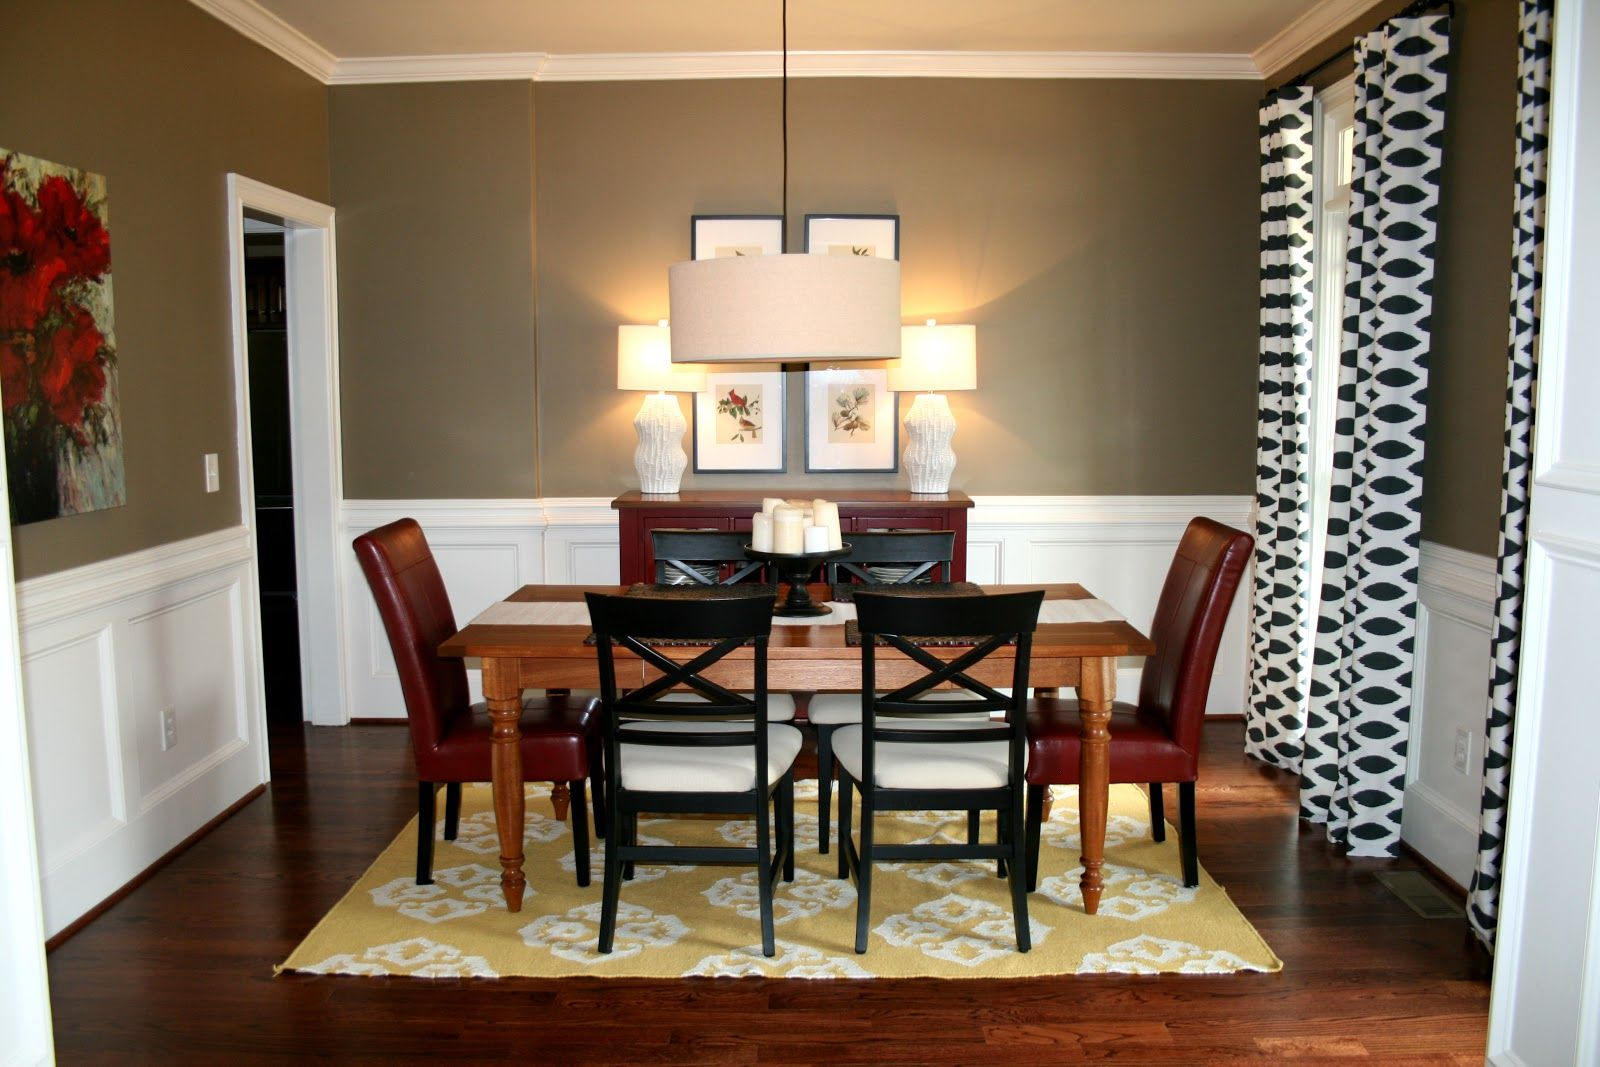 Dining Room Renovation Ideas The Bozeman Bungalow Dining Room Updates Source Ikea Our First